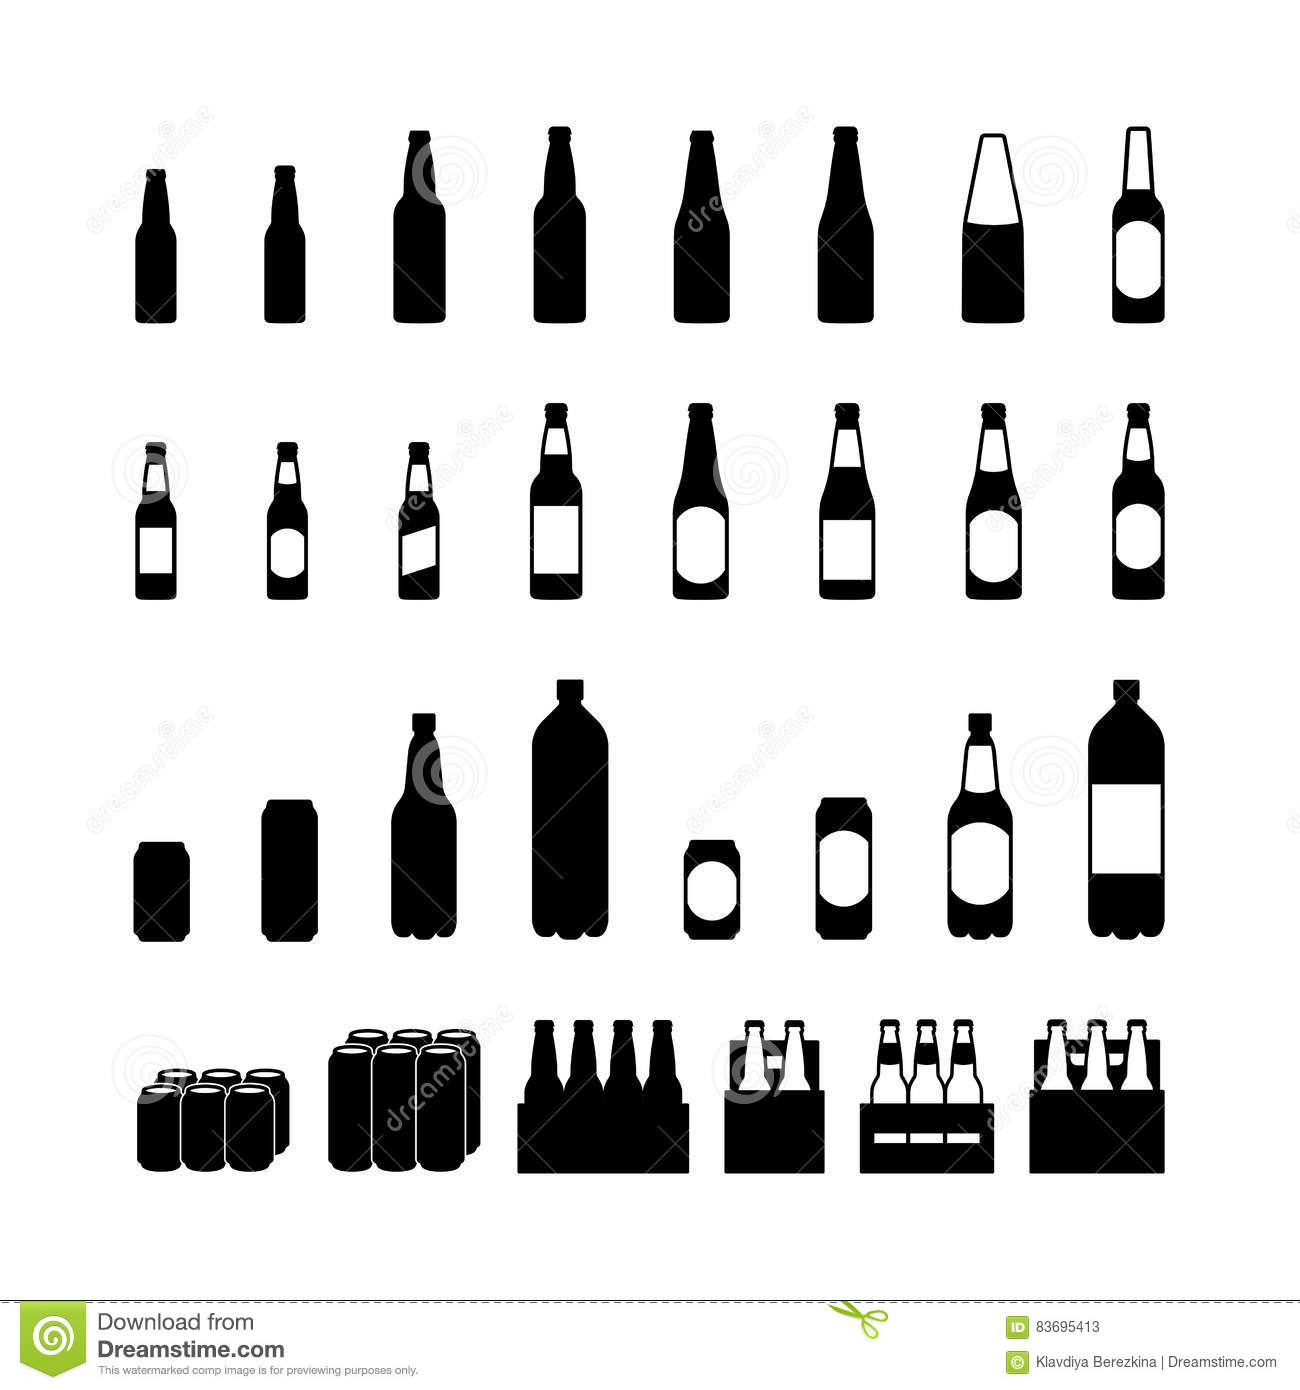 Beer Bottle And Beercan Pictogram Icon Set Stock Vector